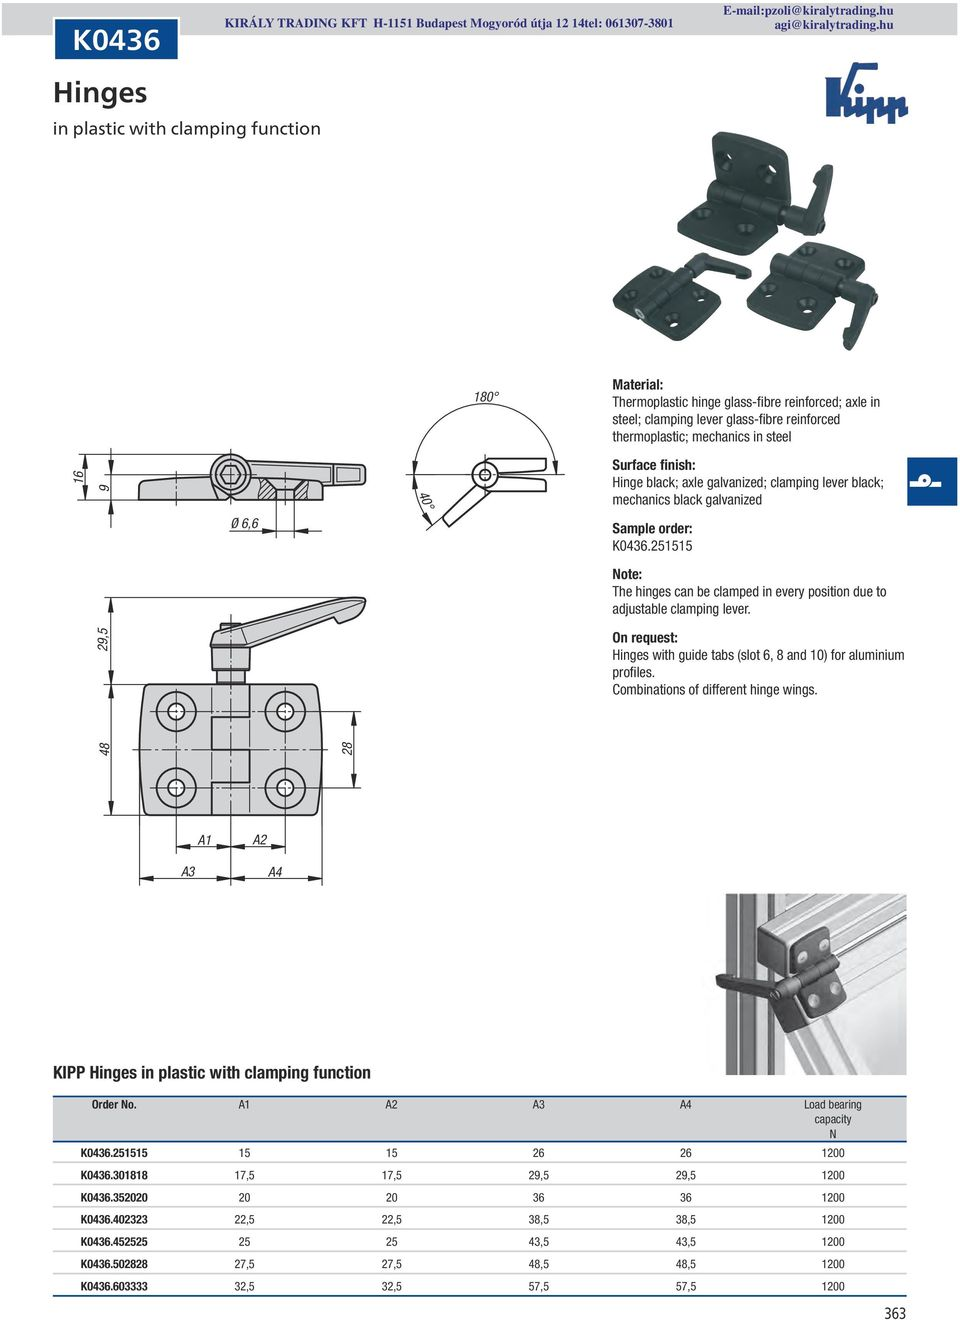 29,5 On request: with guide tabs (slot 6, 8 and 10) for aluminium profiles. Combinations of different hinge wings. 48 28 A1 A2 A3 A4 KIPP in plastic with clamping function Order No.